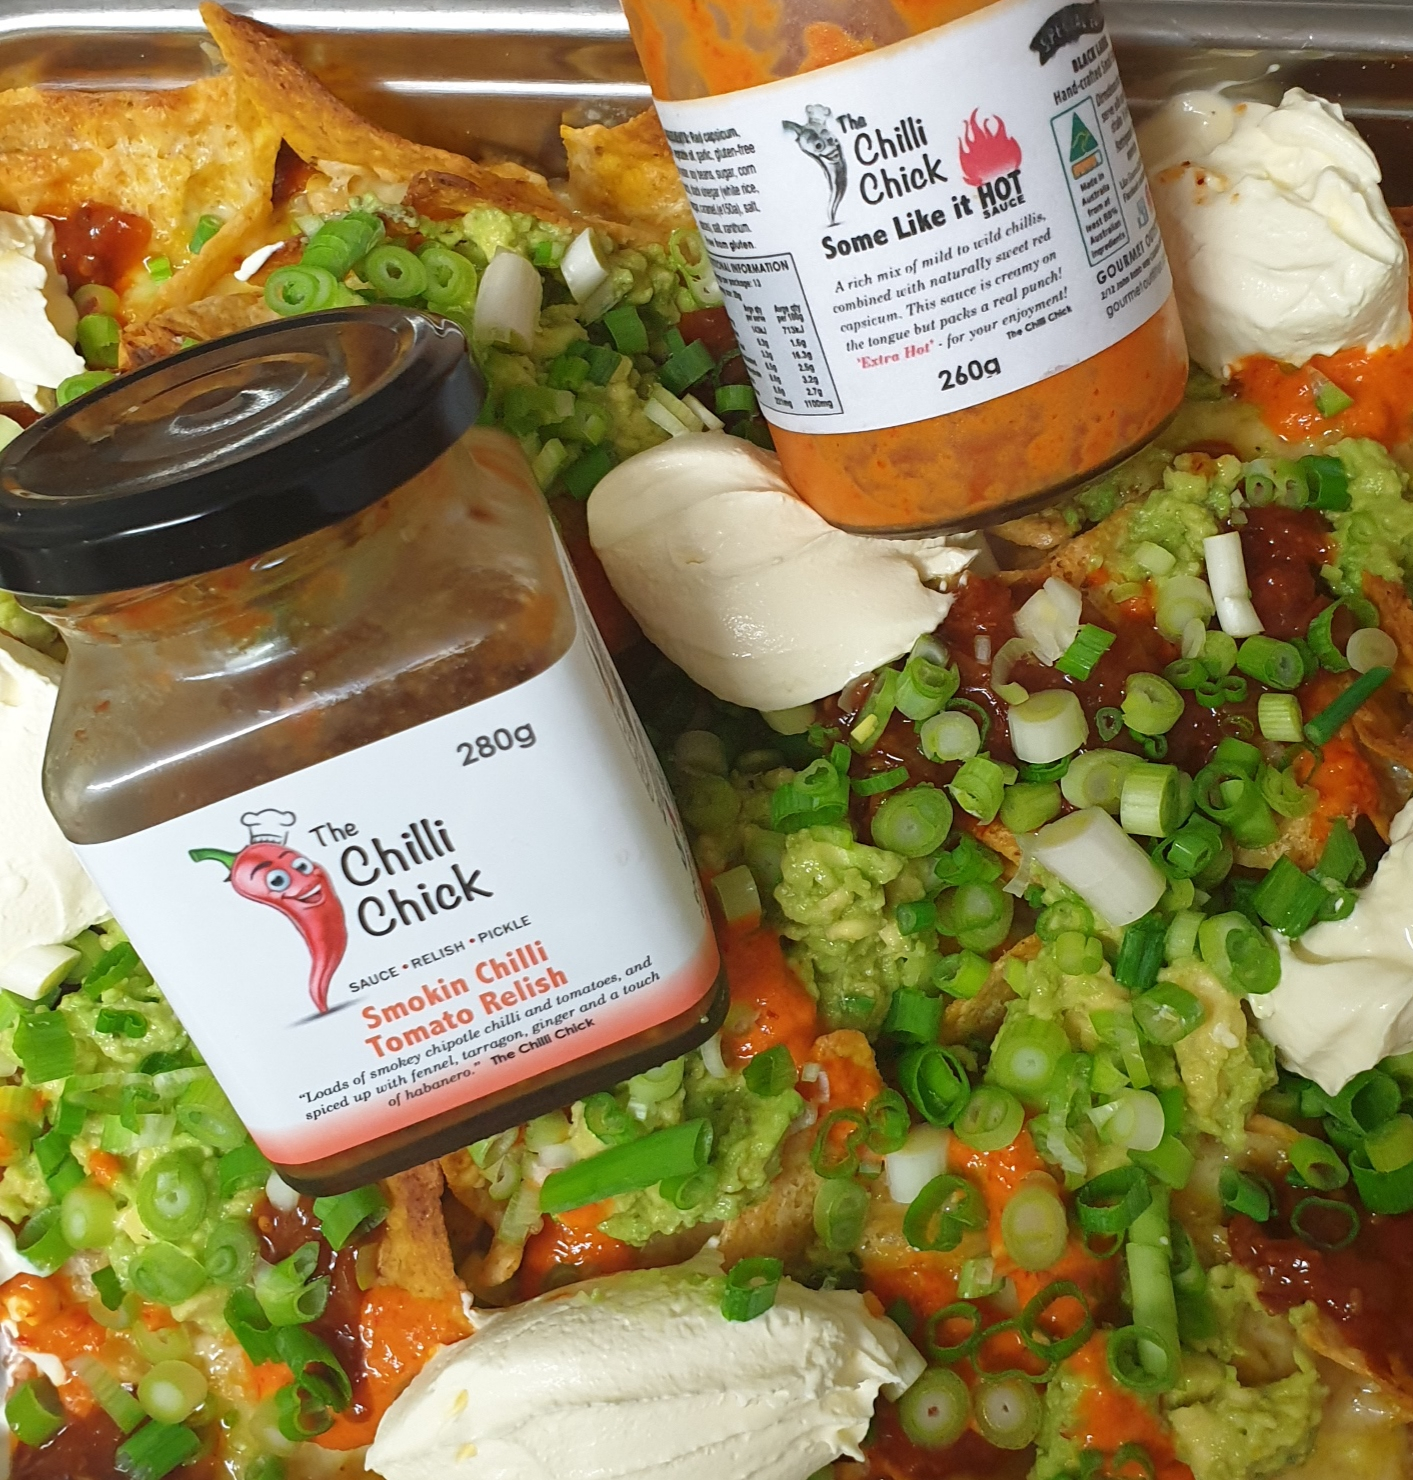 Smokin Chilli Tomato Relish